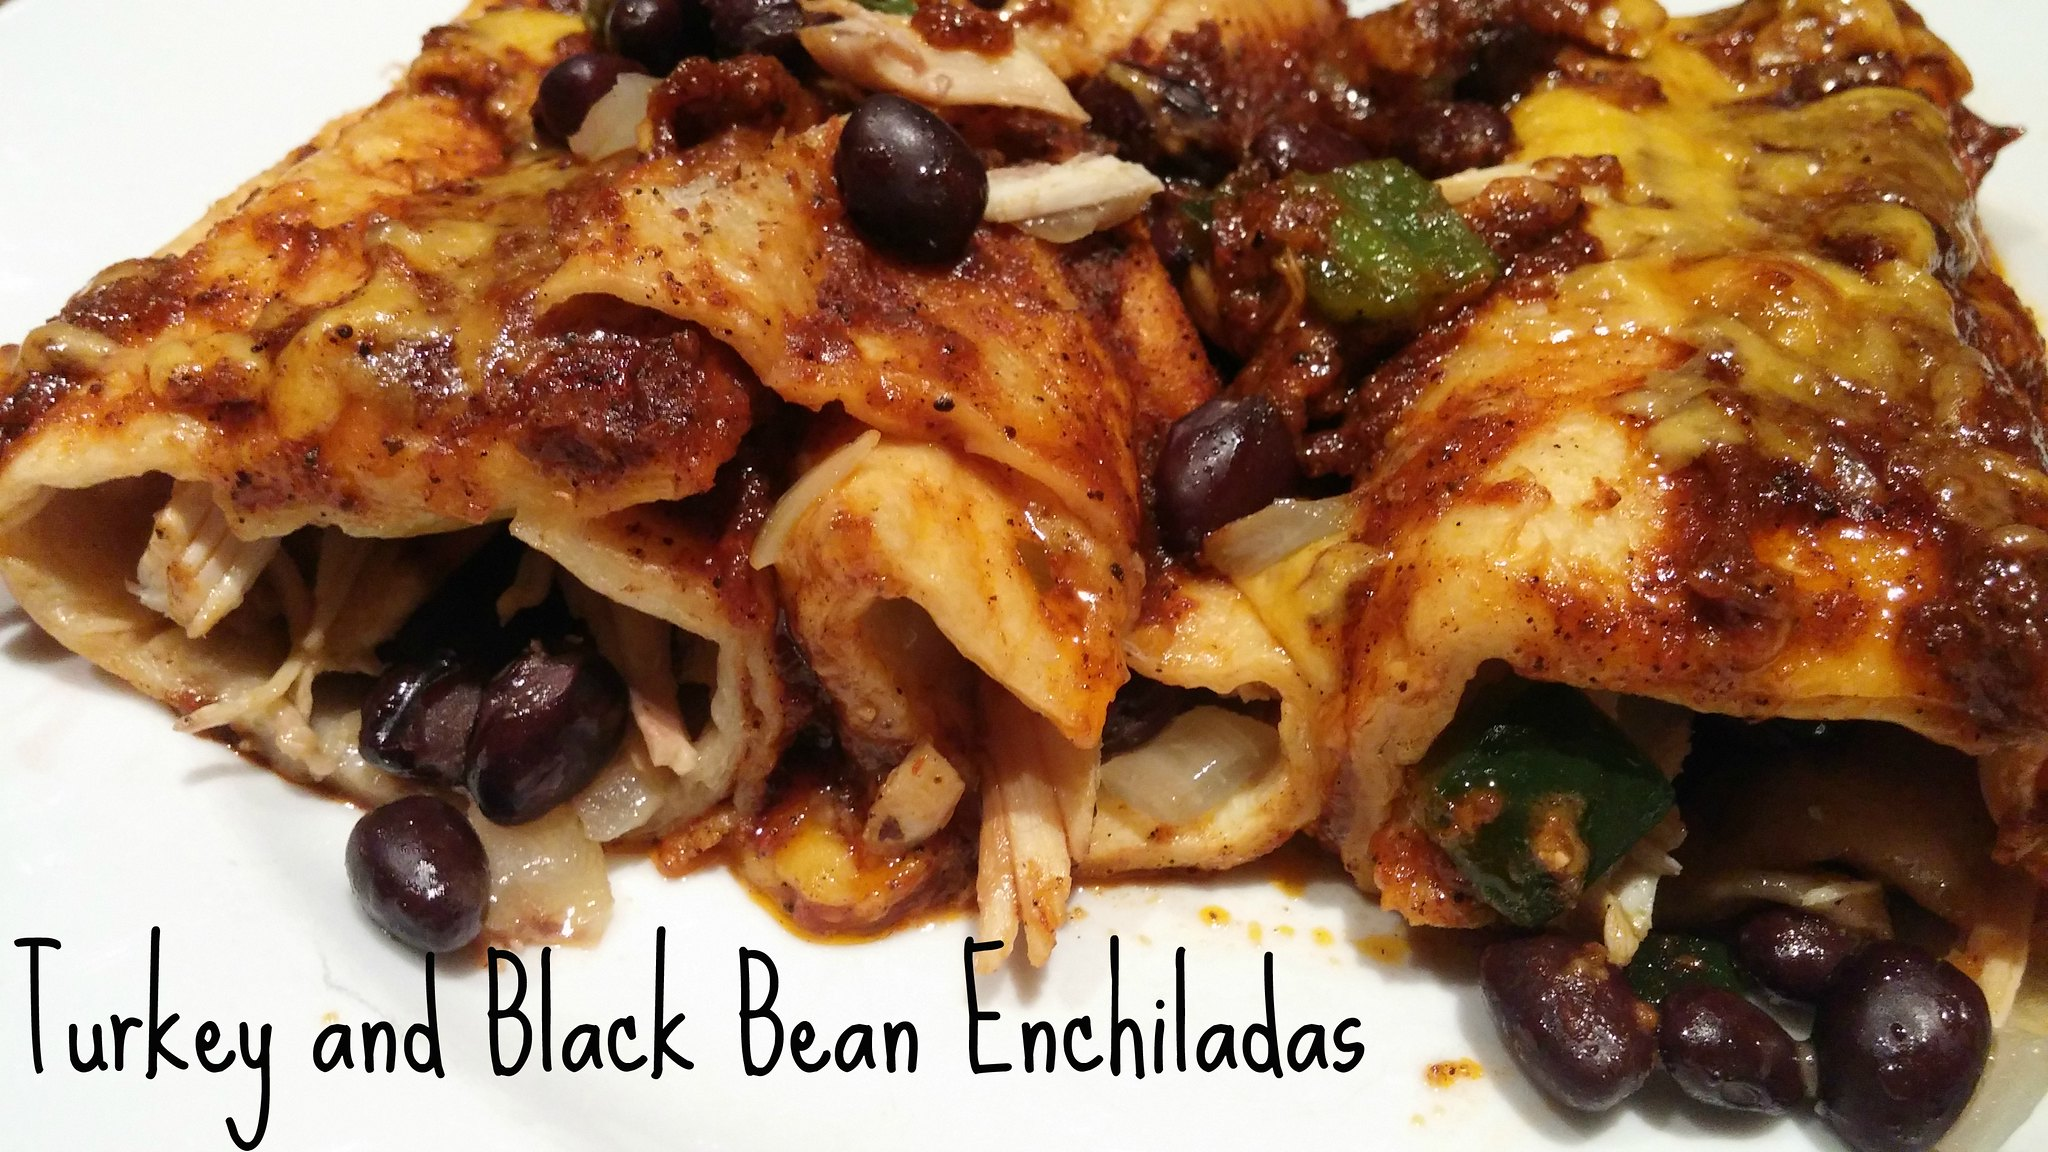 Turkey and Black Bean Enchiladas – Pretending To Adult